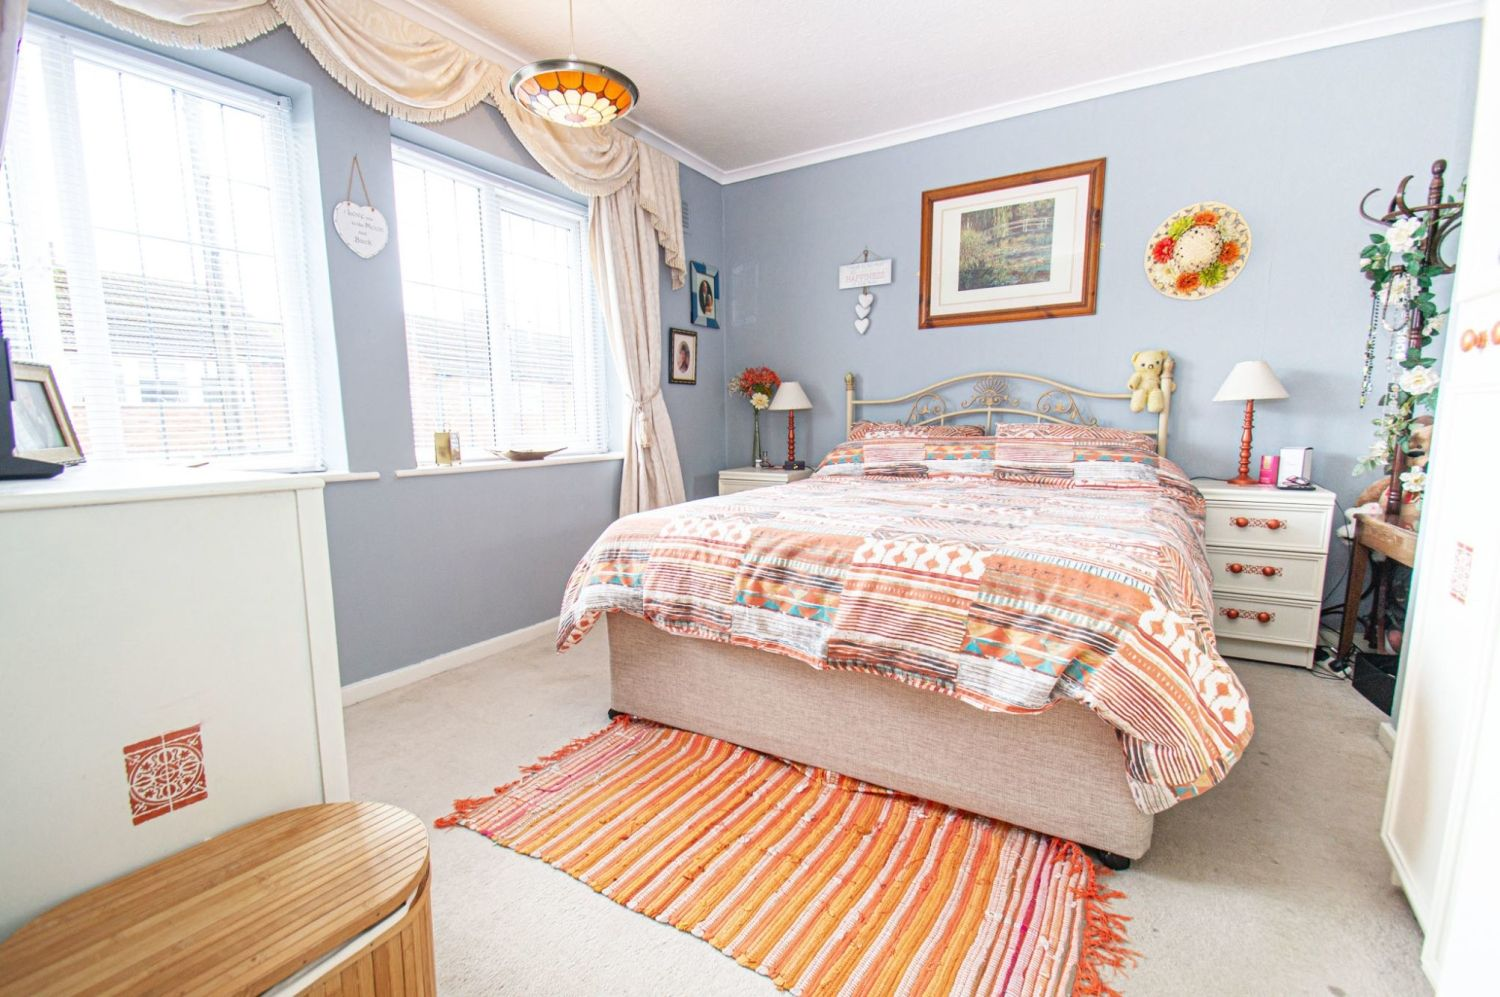 4 bed semi-detached for sale in Wheatcroft Close, Halesowen  - Property Image 11